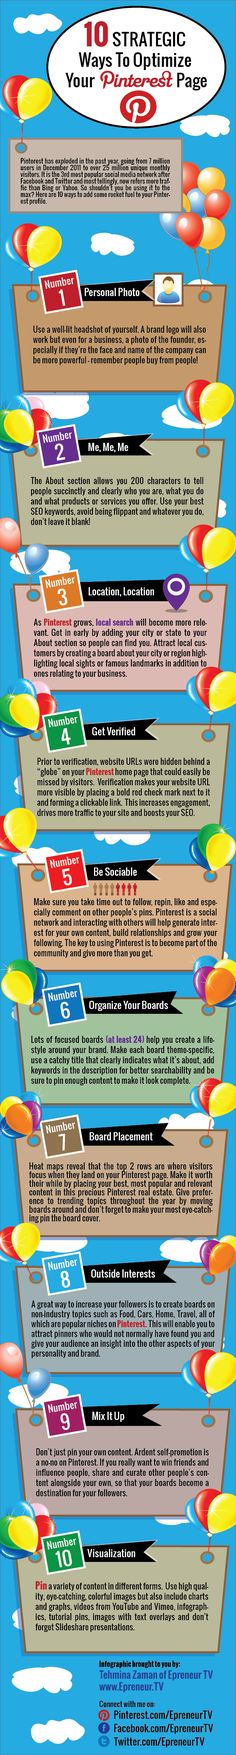 10 Strategic Ways to Optimize Your Pinterest Page - Infographic